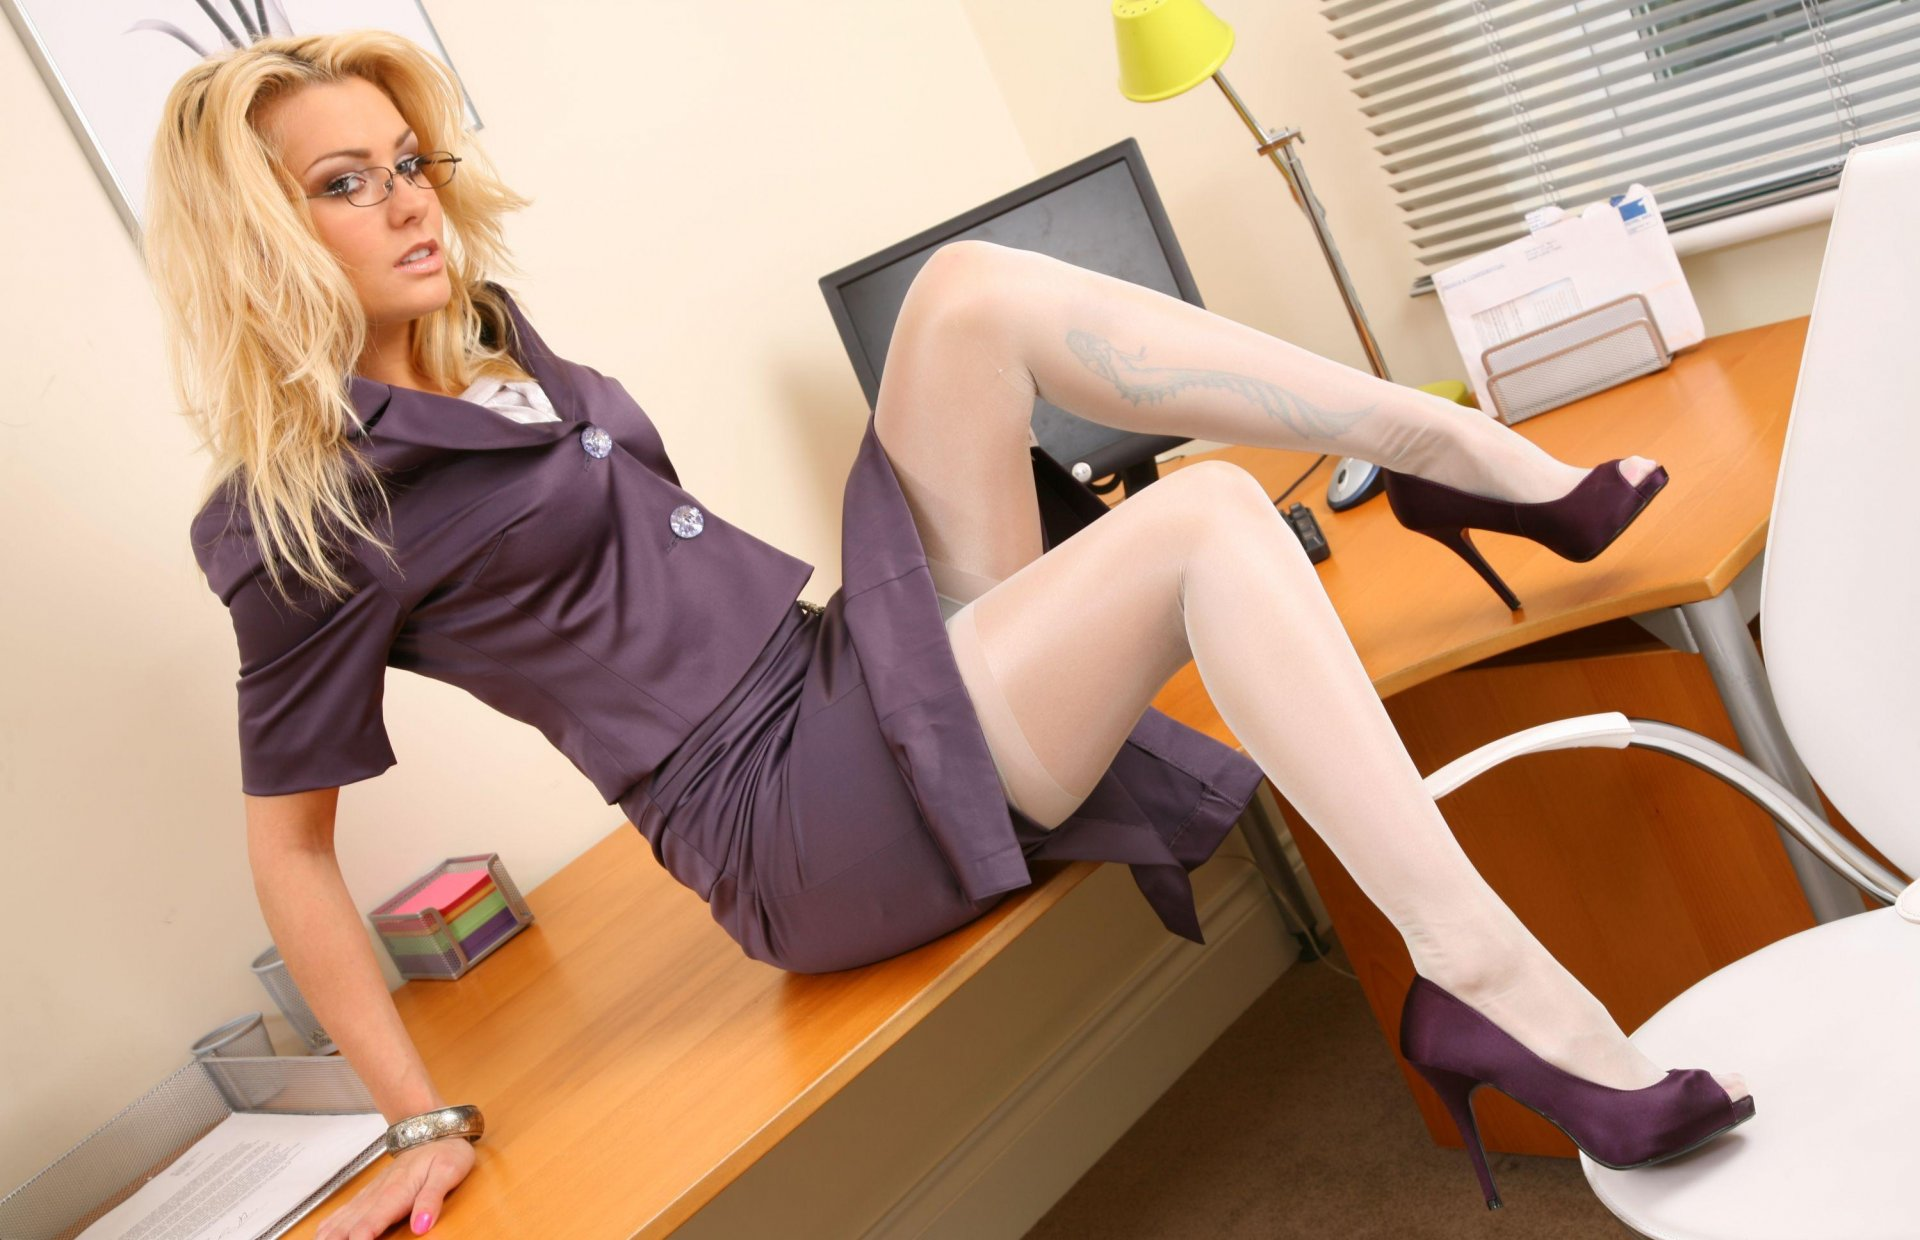 Housewife gets hot girl in the office playing woth